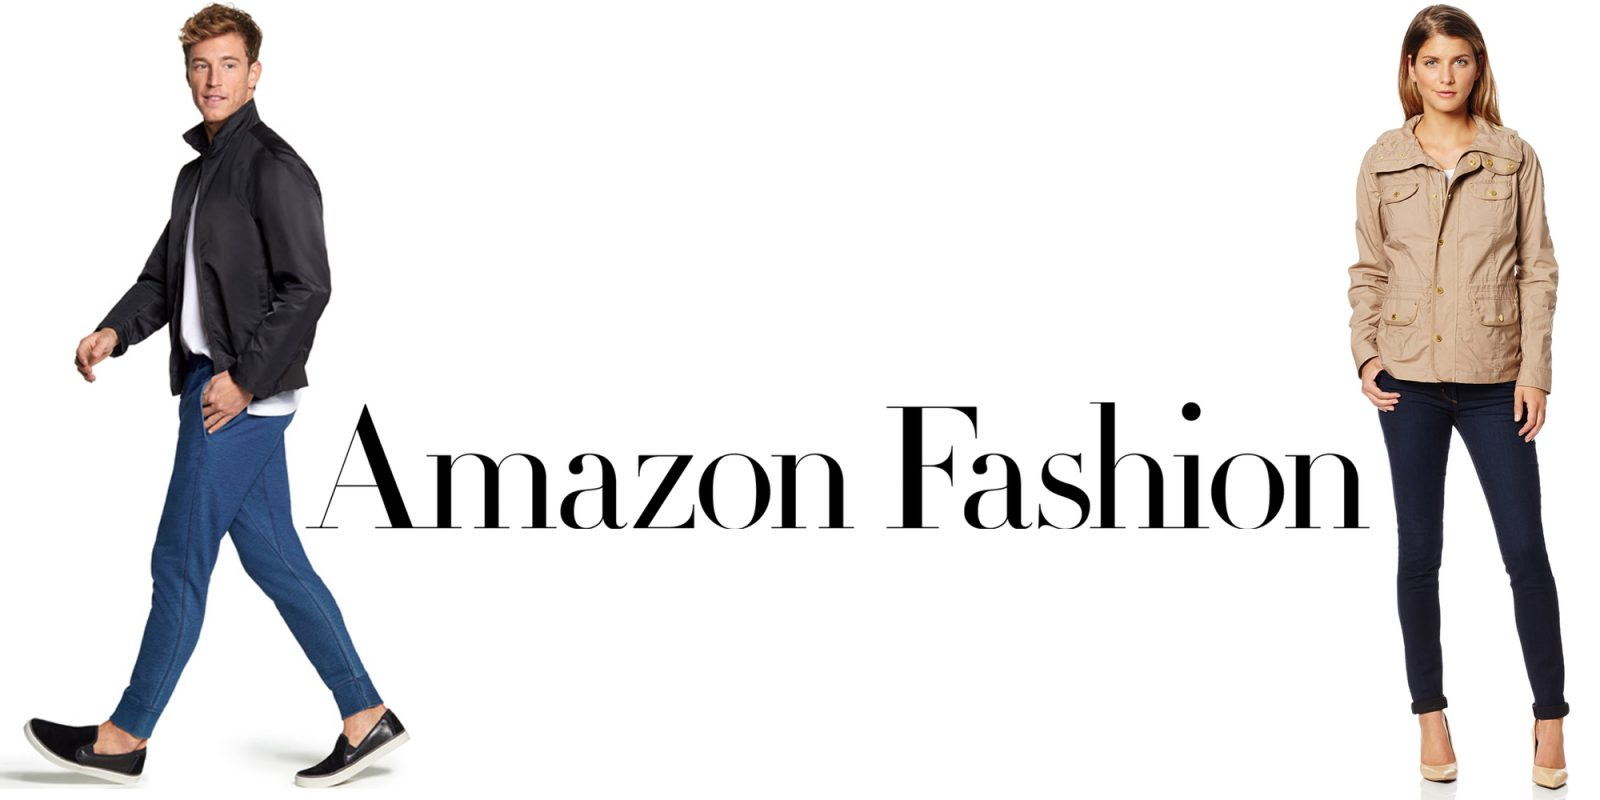 Amazon Fashion Amazon Could Reach 60b In Apparel Sales Promo Marketing